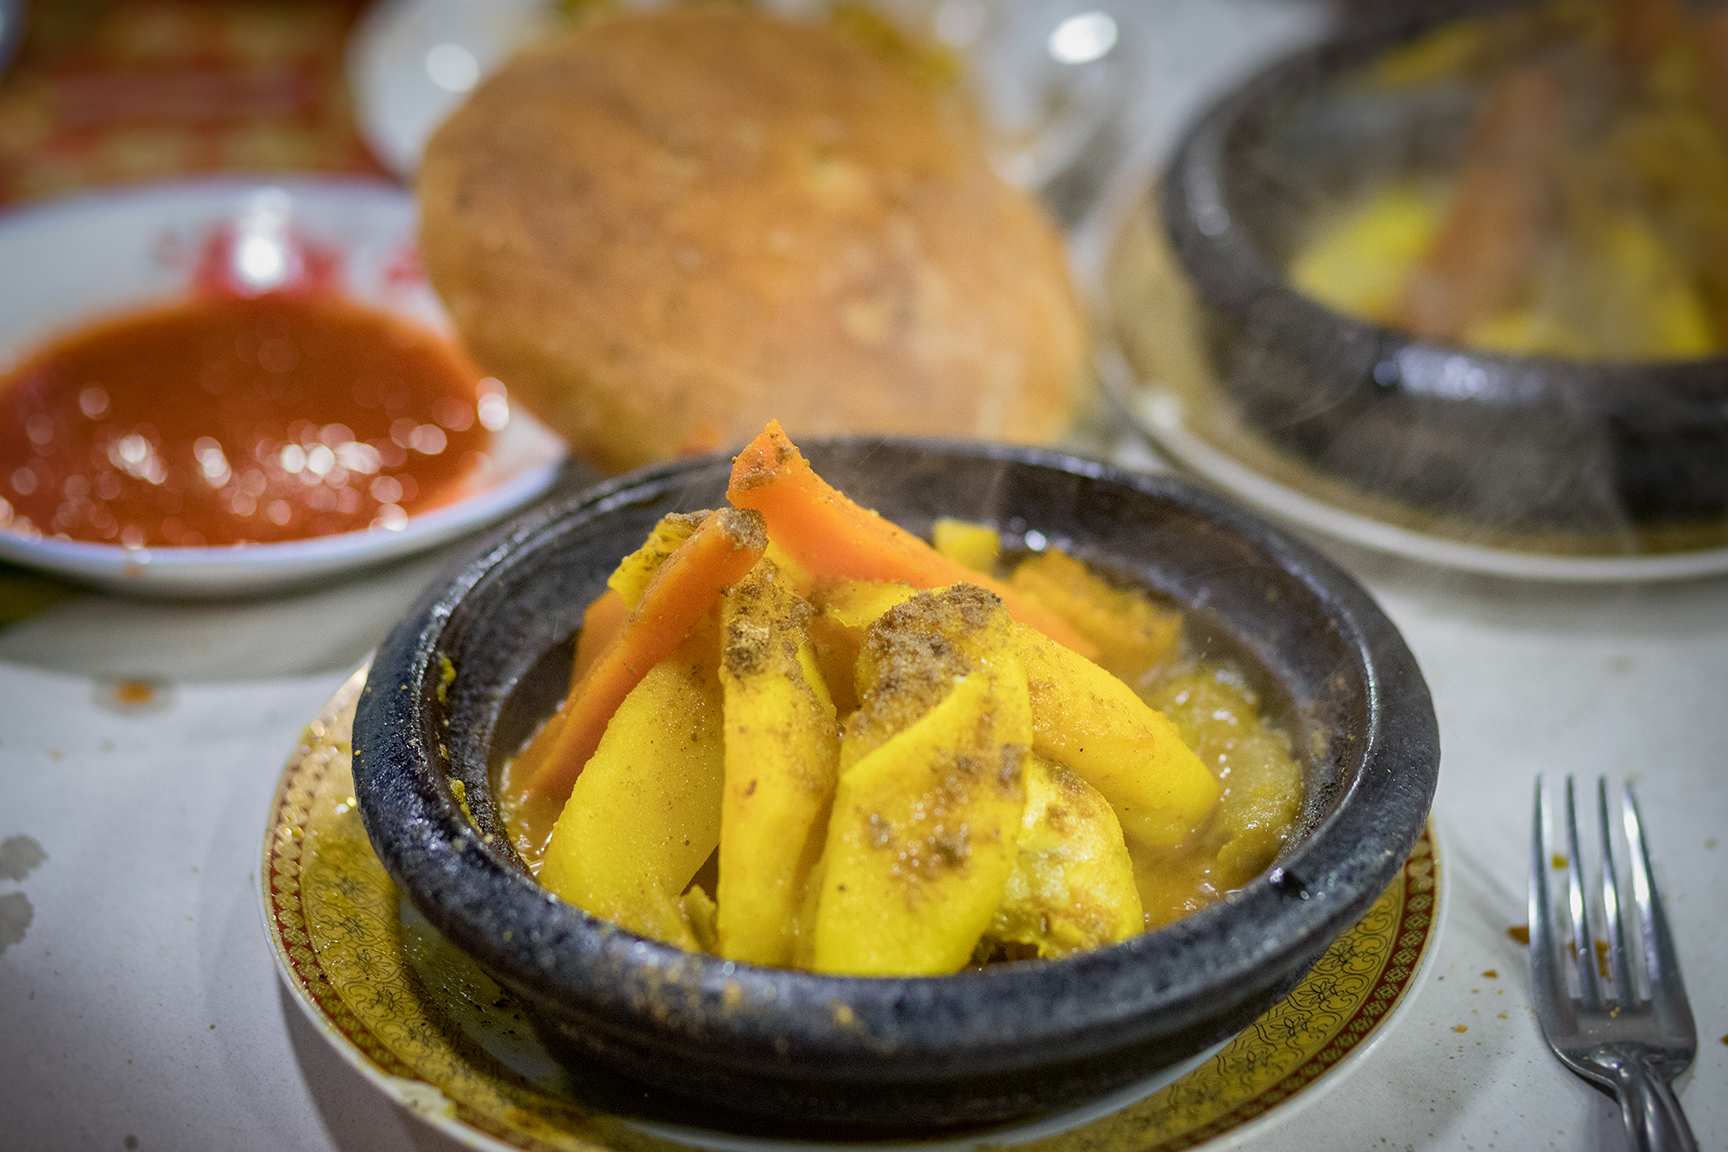 Tajine - A Morrocan dish cooked & served in a clay pot with a variety of ingredients. This one was potatoes, carrots & chicken with various spices.